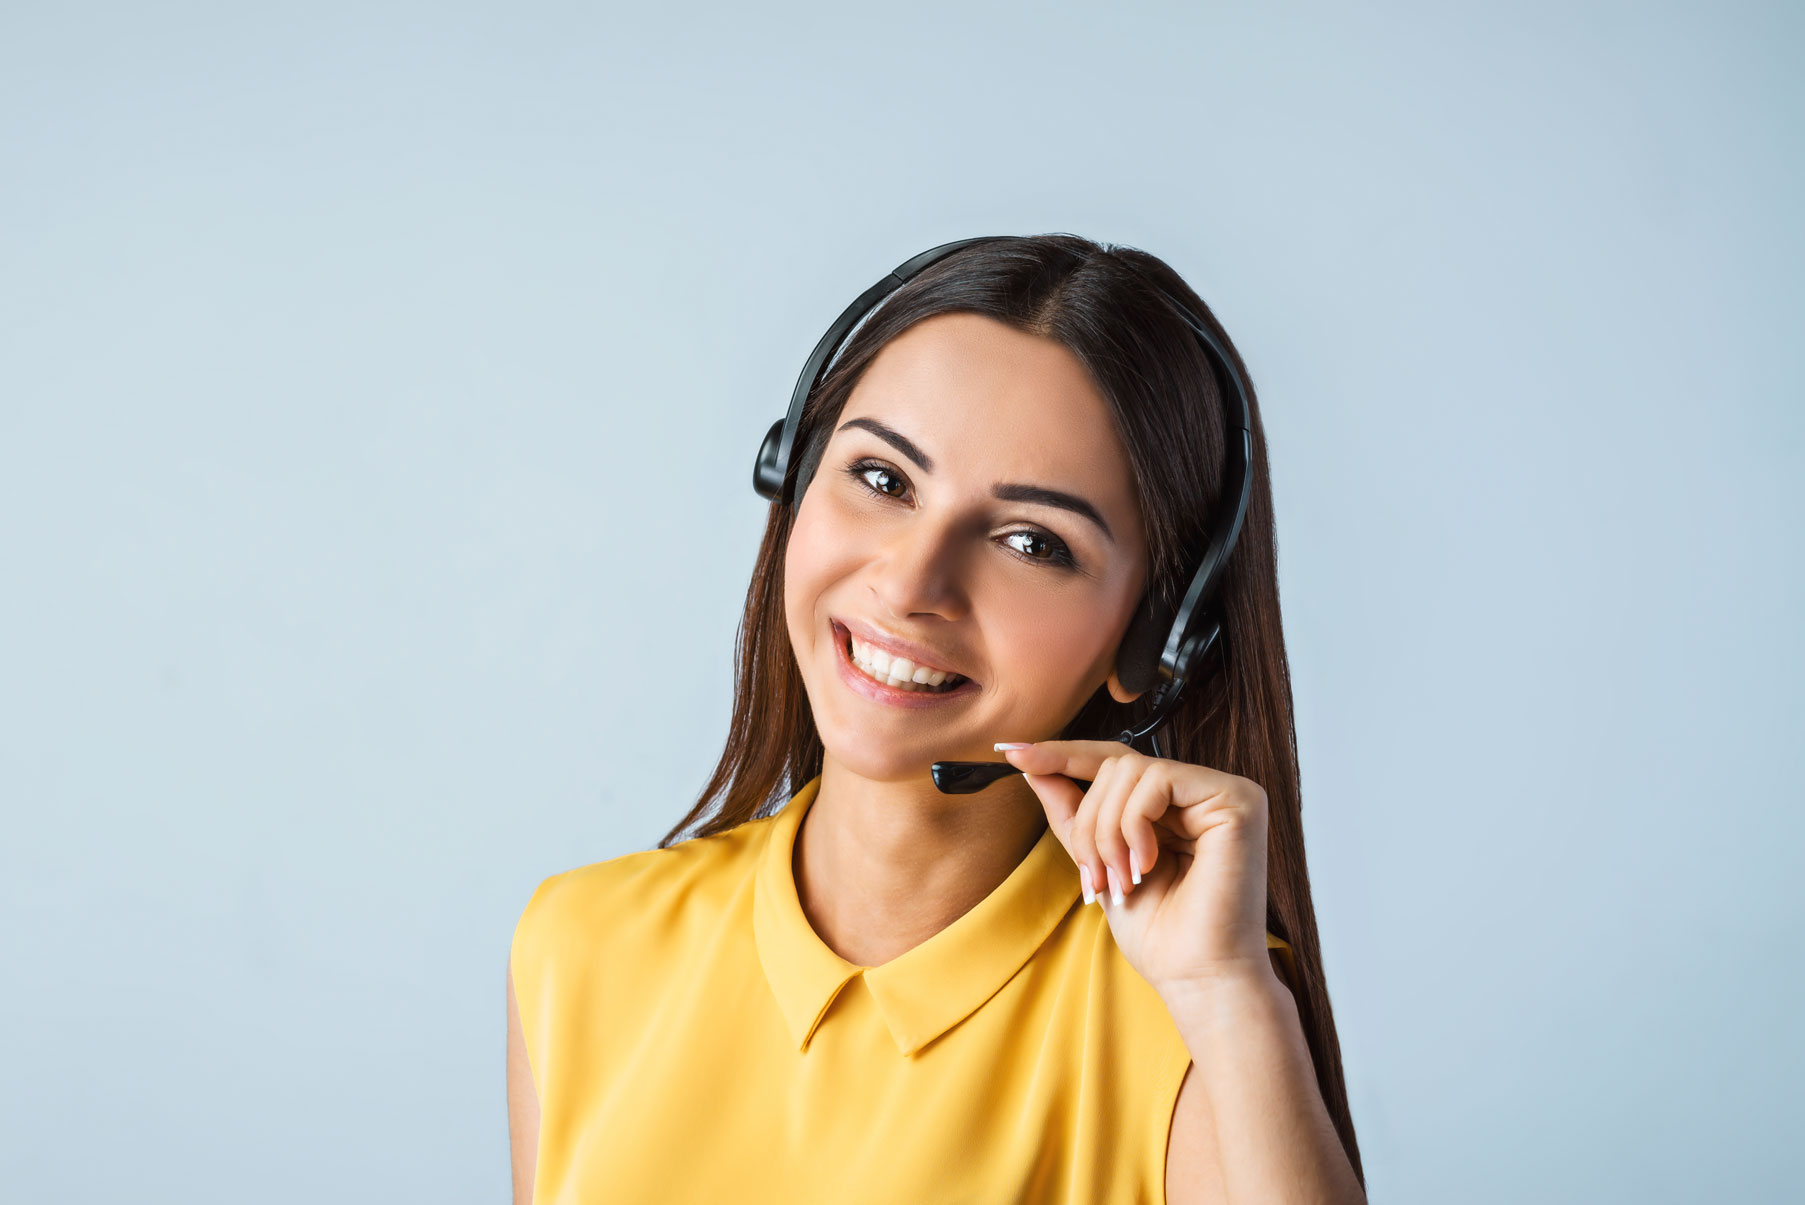 How to Hire Call Center Reps?